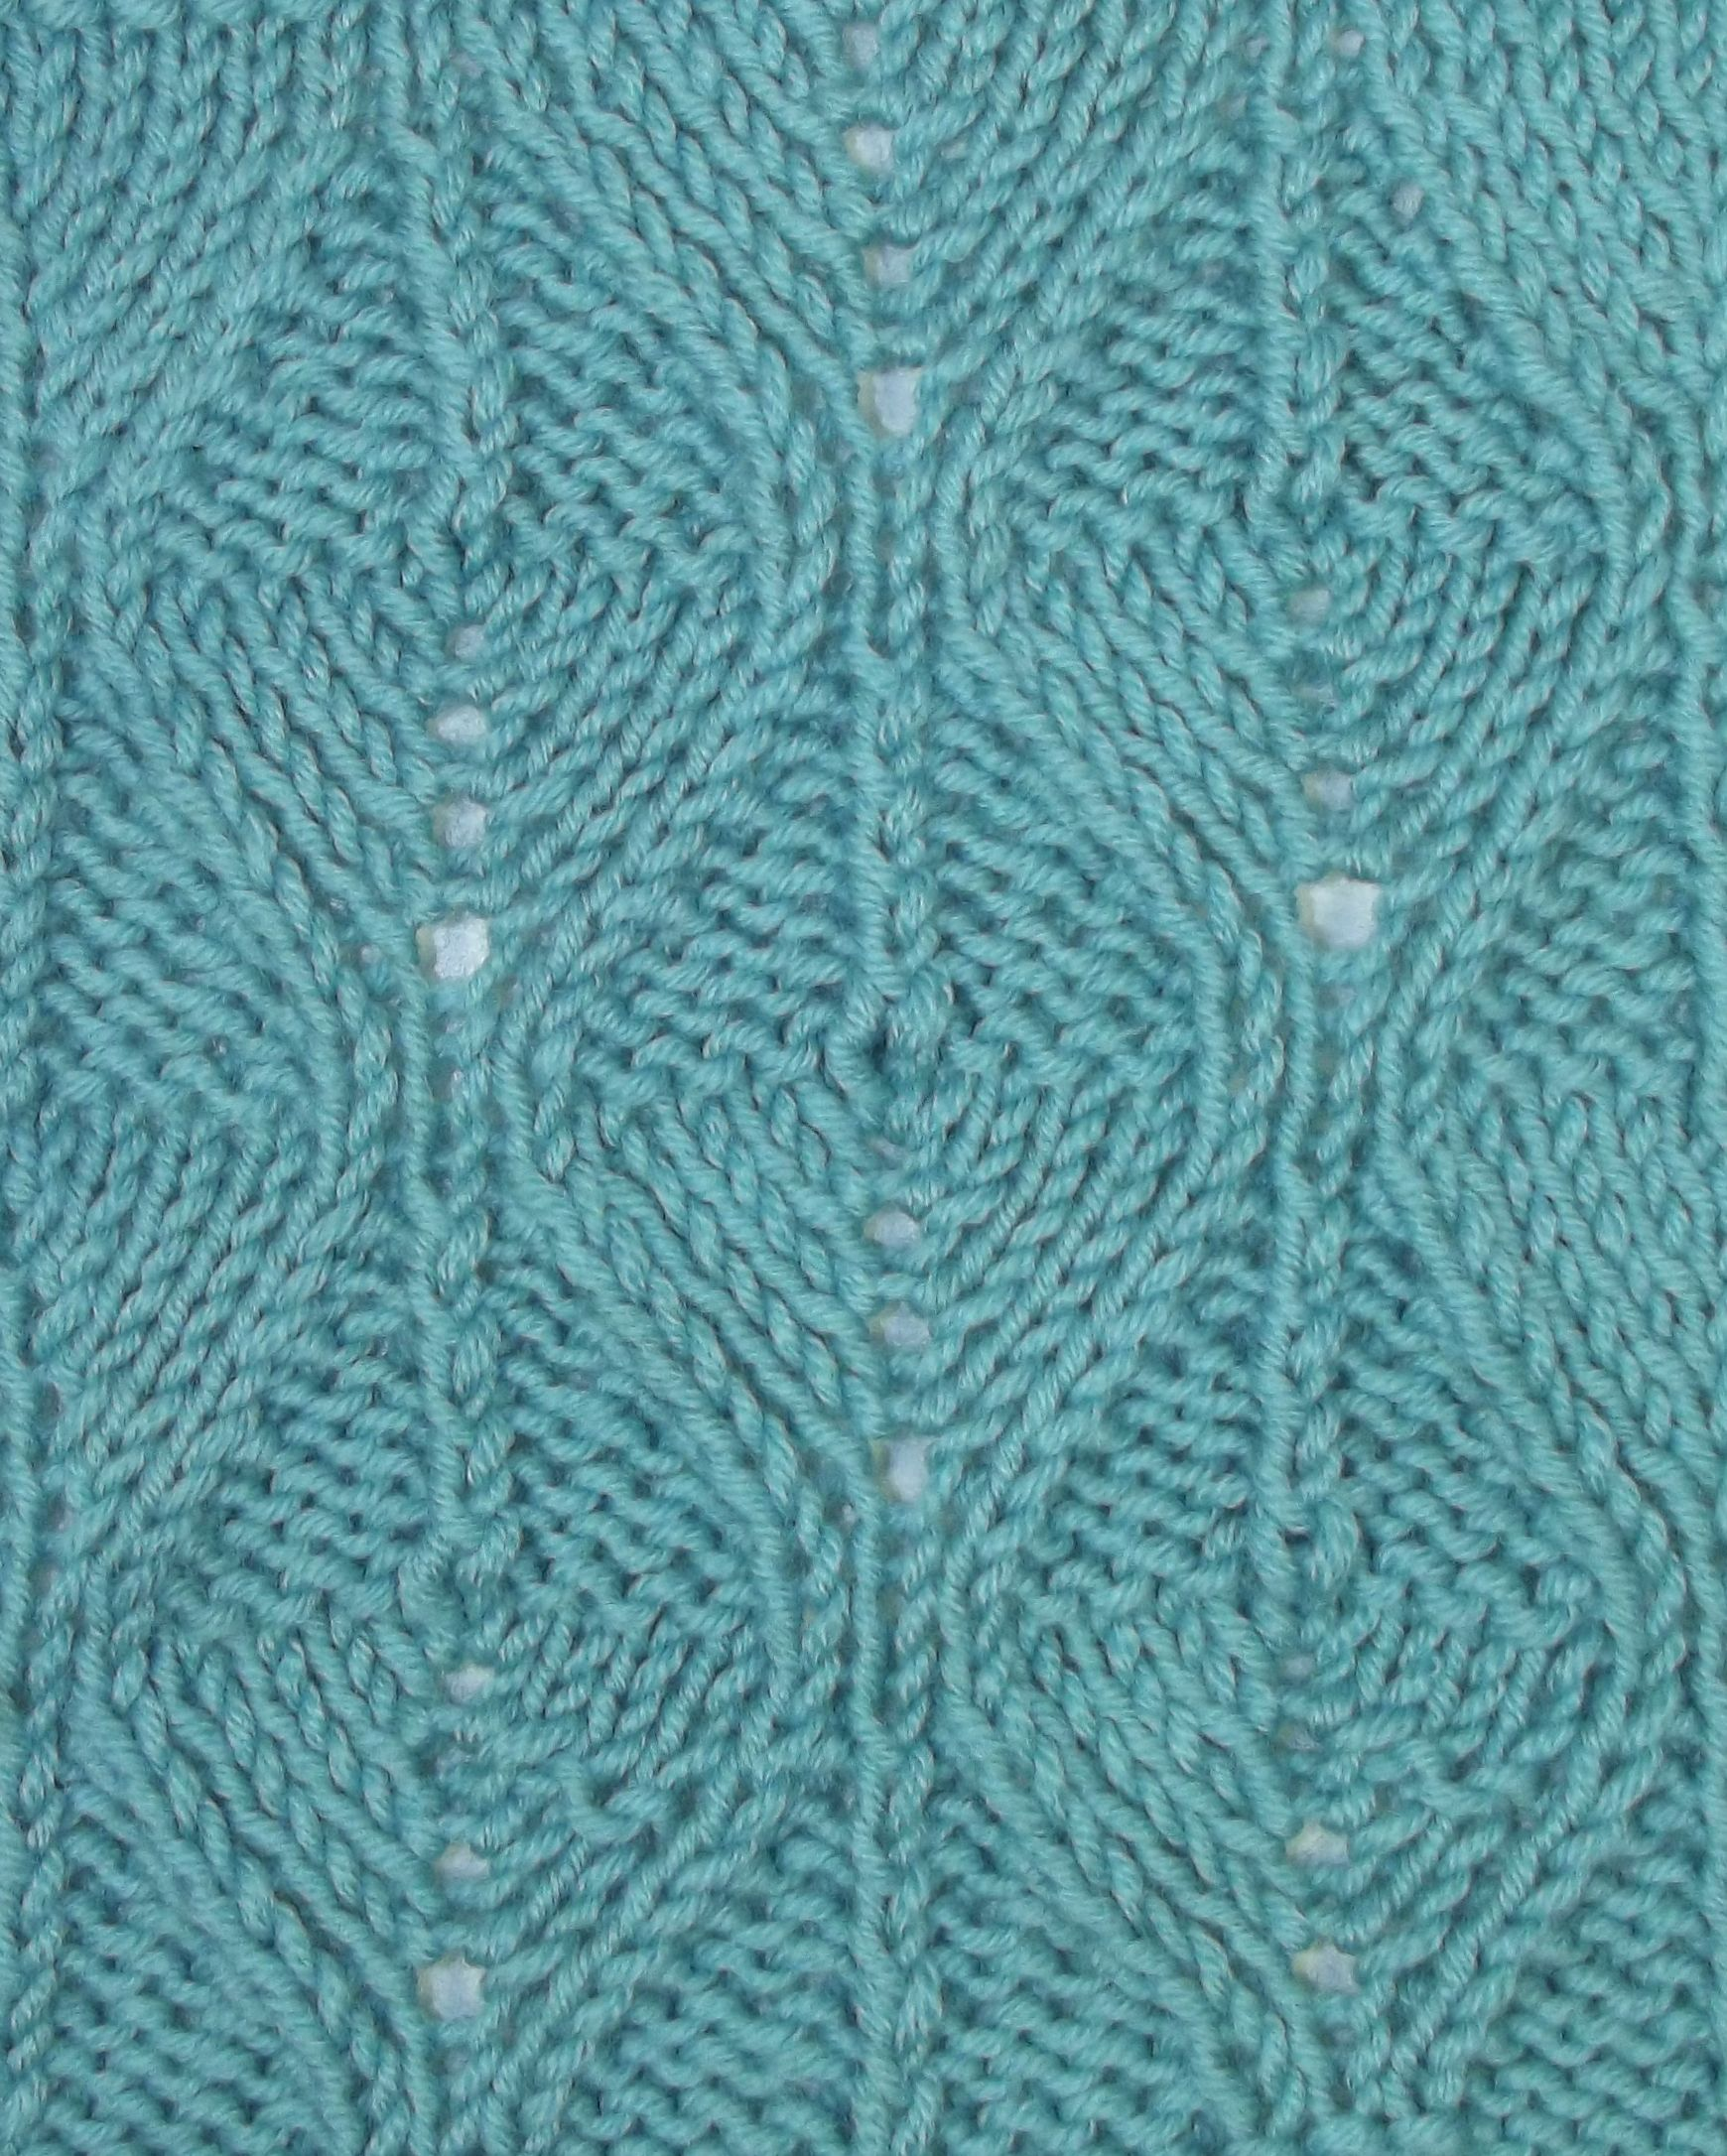 Reversible Fern Stitch. Can\'t find instructions, but looks like ...